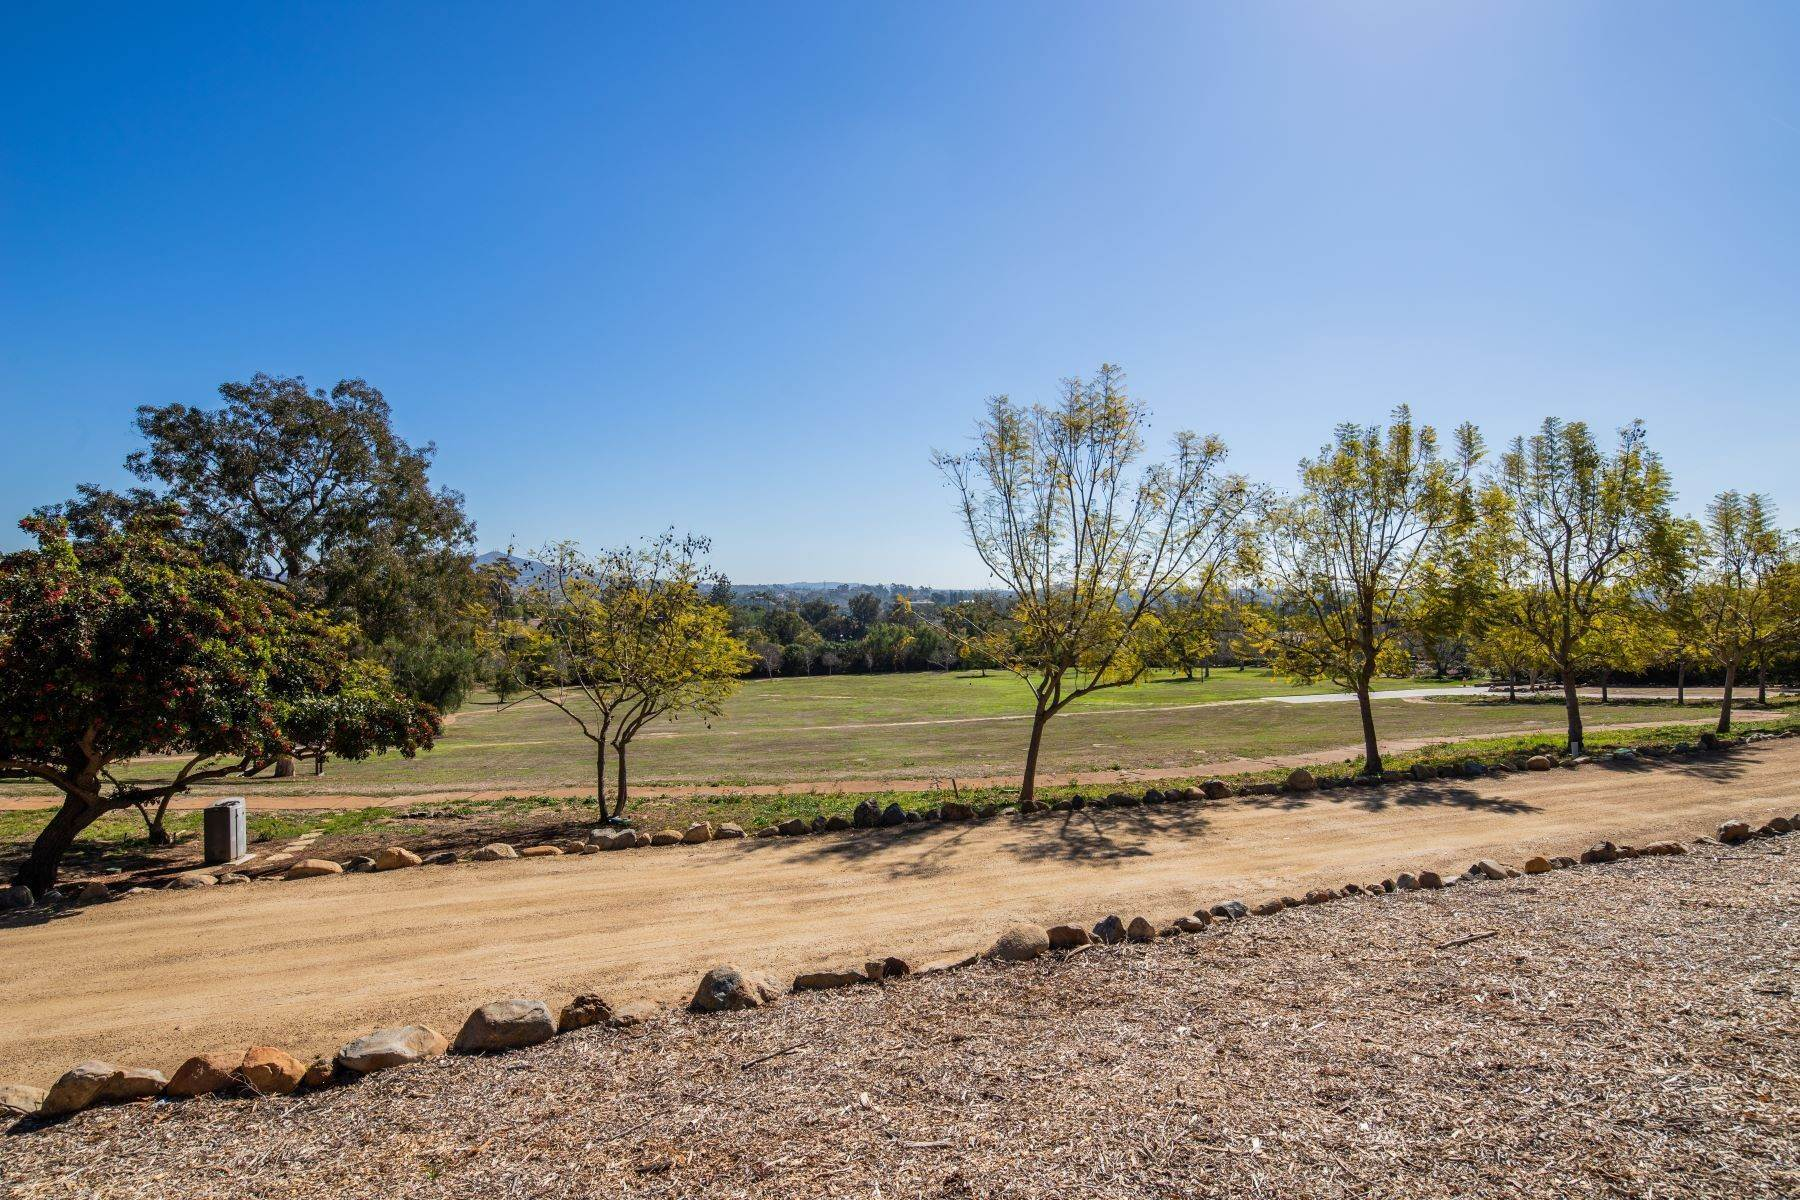 8. Land for Sale at 17048 El Mirador, Rancho Santa Fe, CA 92067 17048 El Mirador Rancho Santa Fe, California 92067 United States